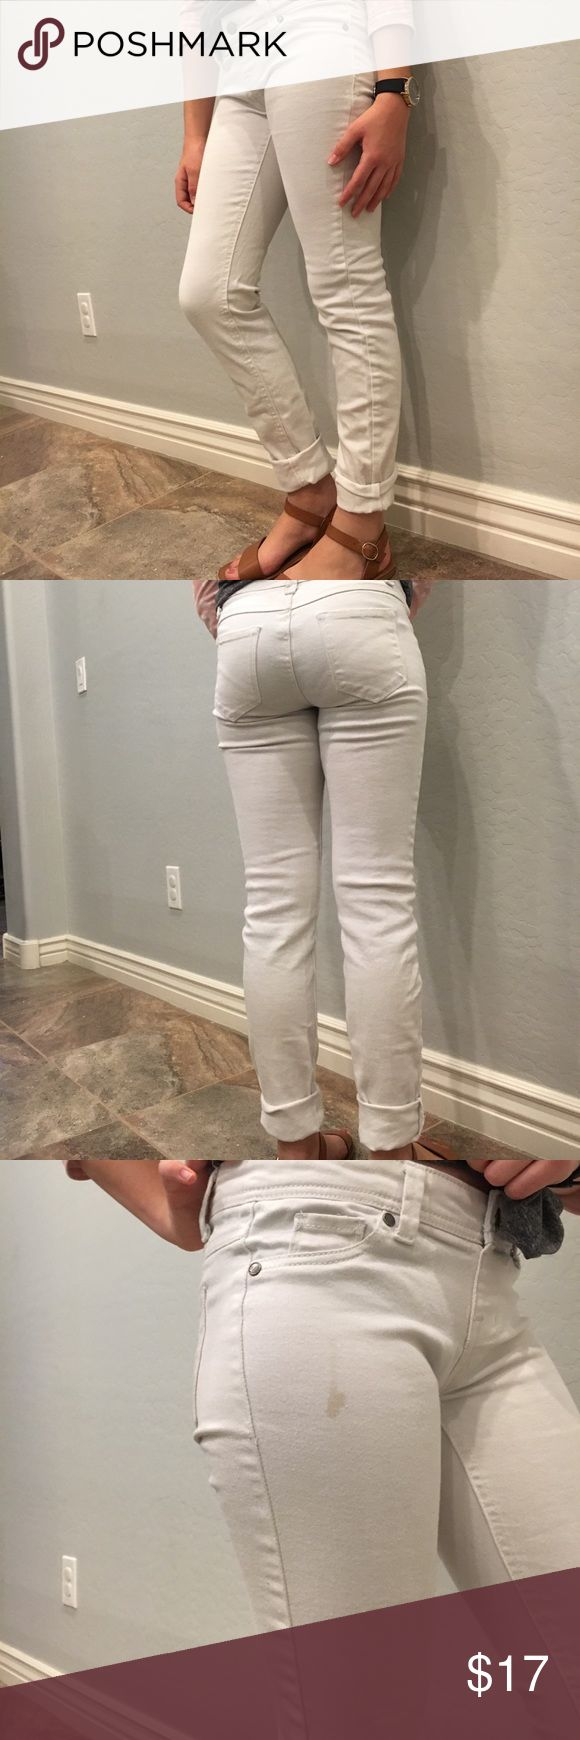 17 Best ideas about White Skinny Jeans on Pinterest | White pants ...